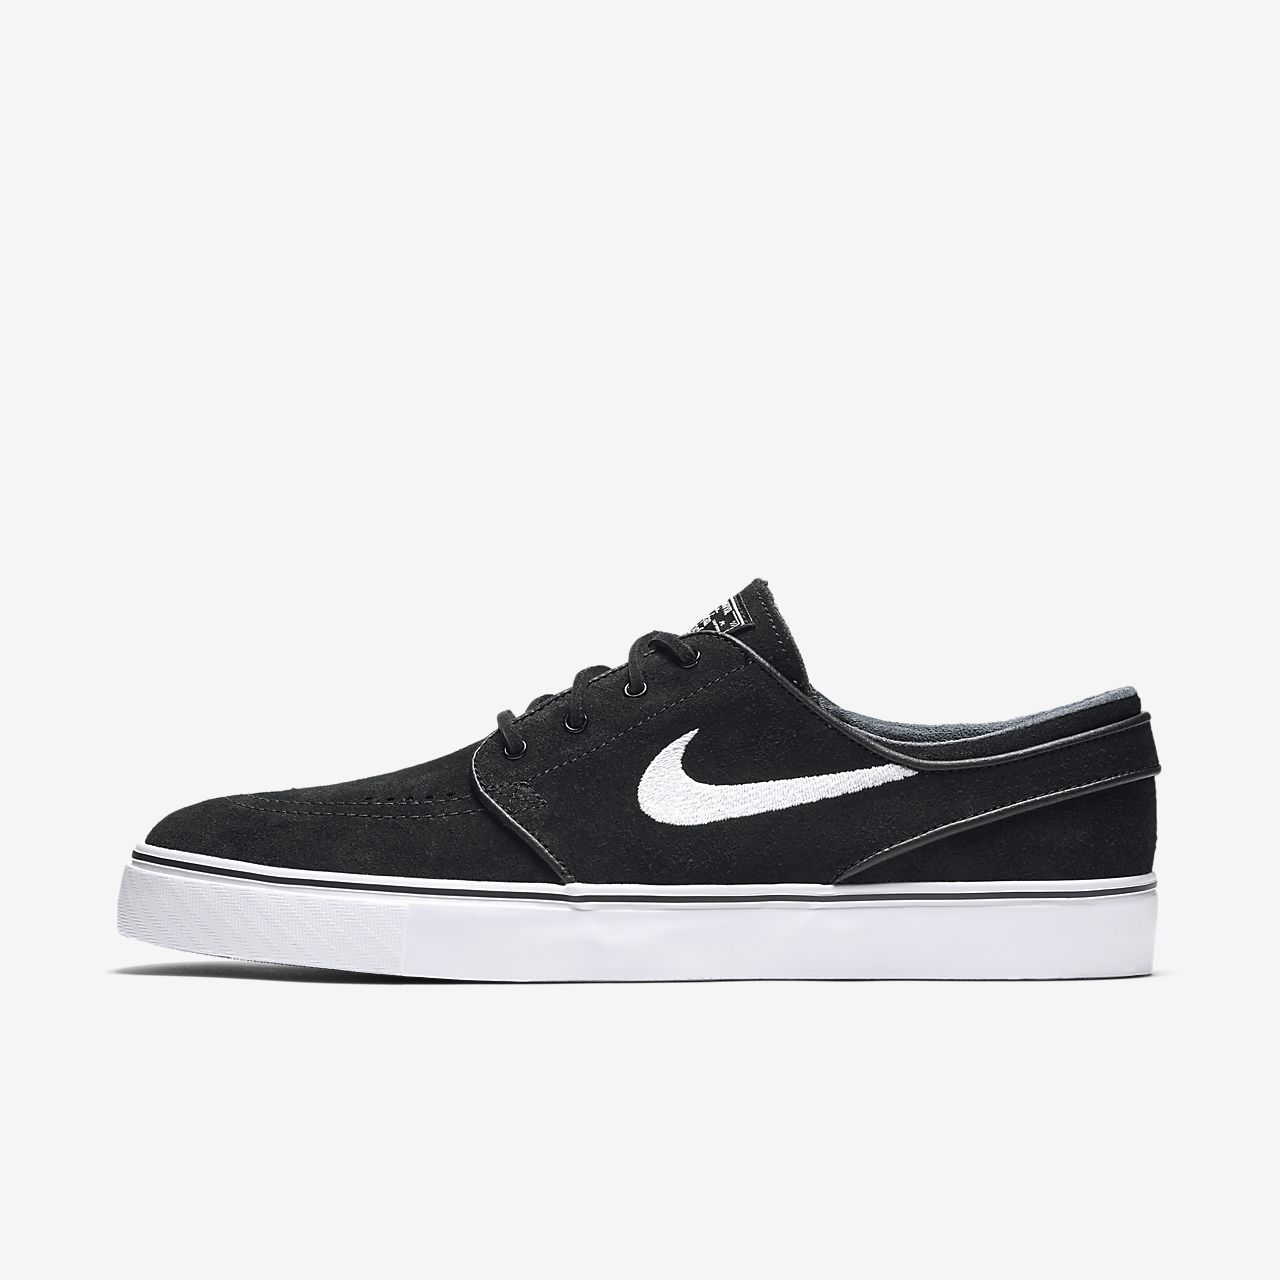 check out 8f554 d2c48 ... Nike SB Zoom Stefan Janoski OG Men s Skate Shoe